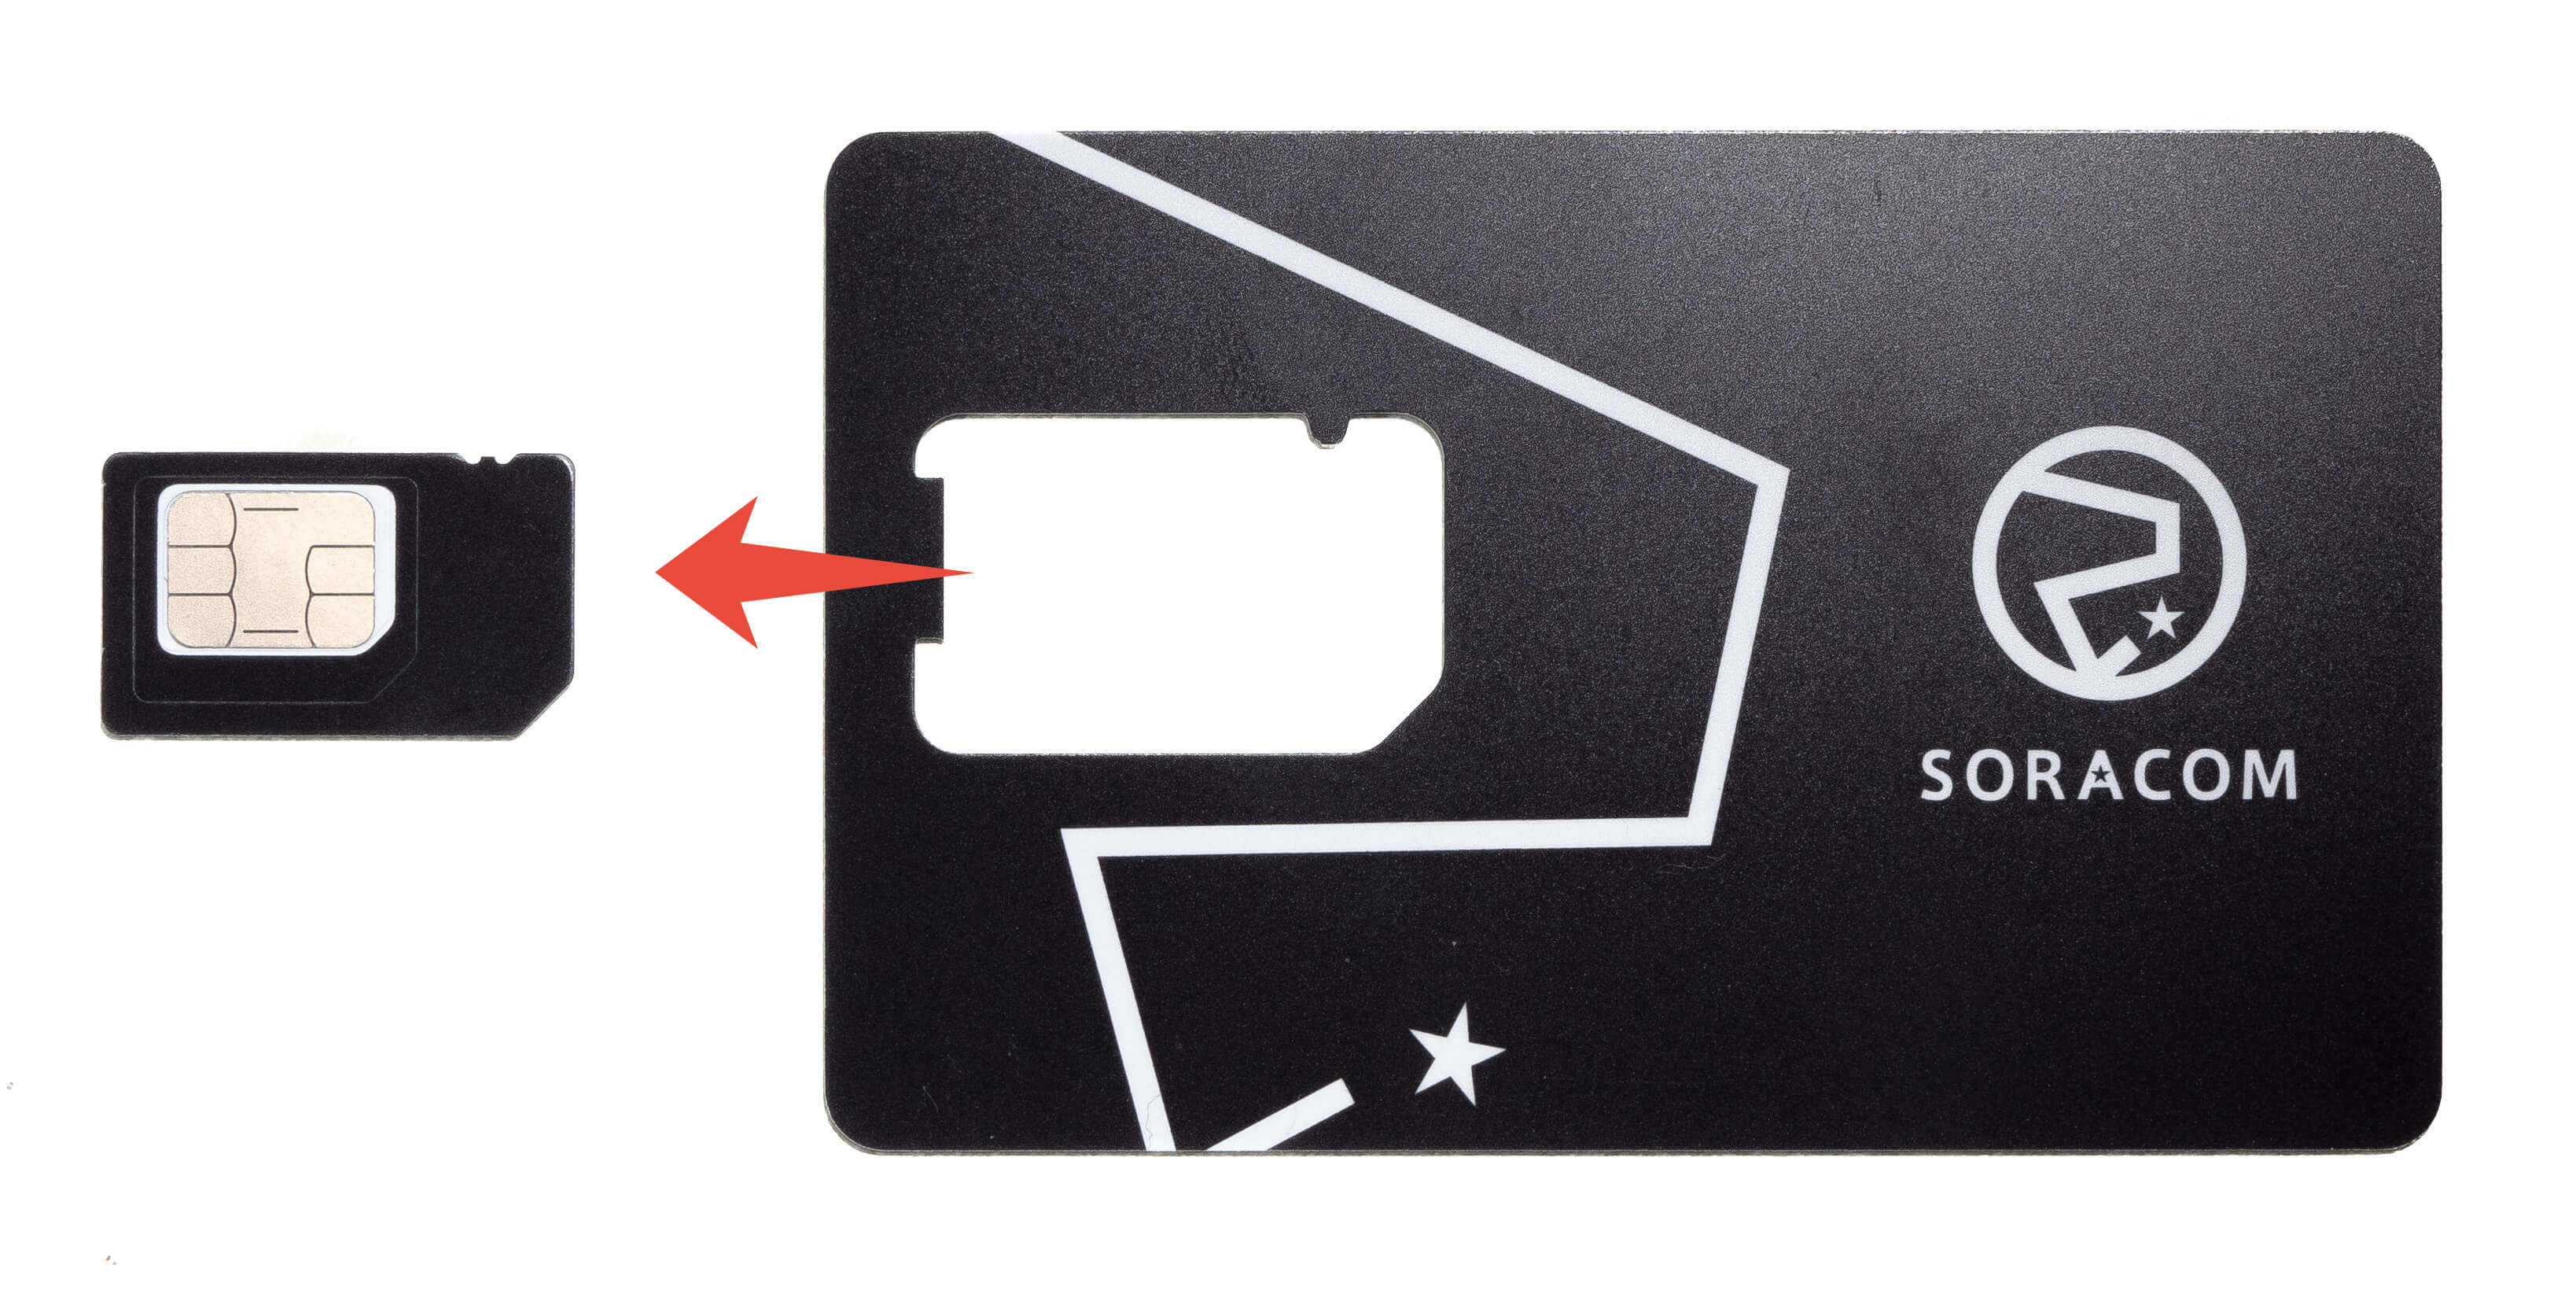 Gently detach the SIM card from the card package